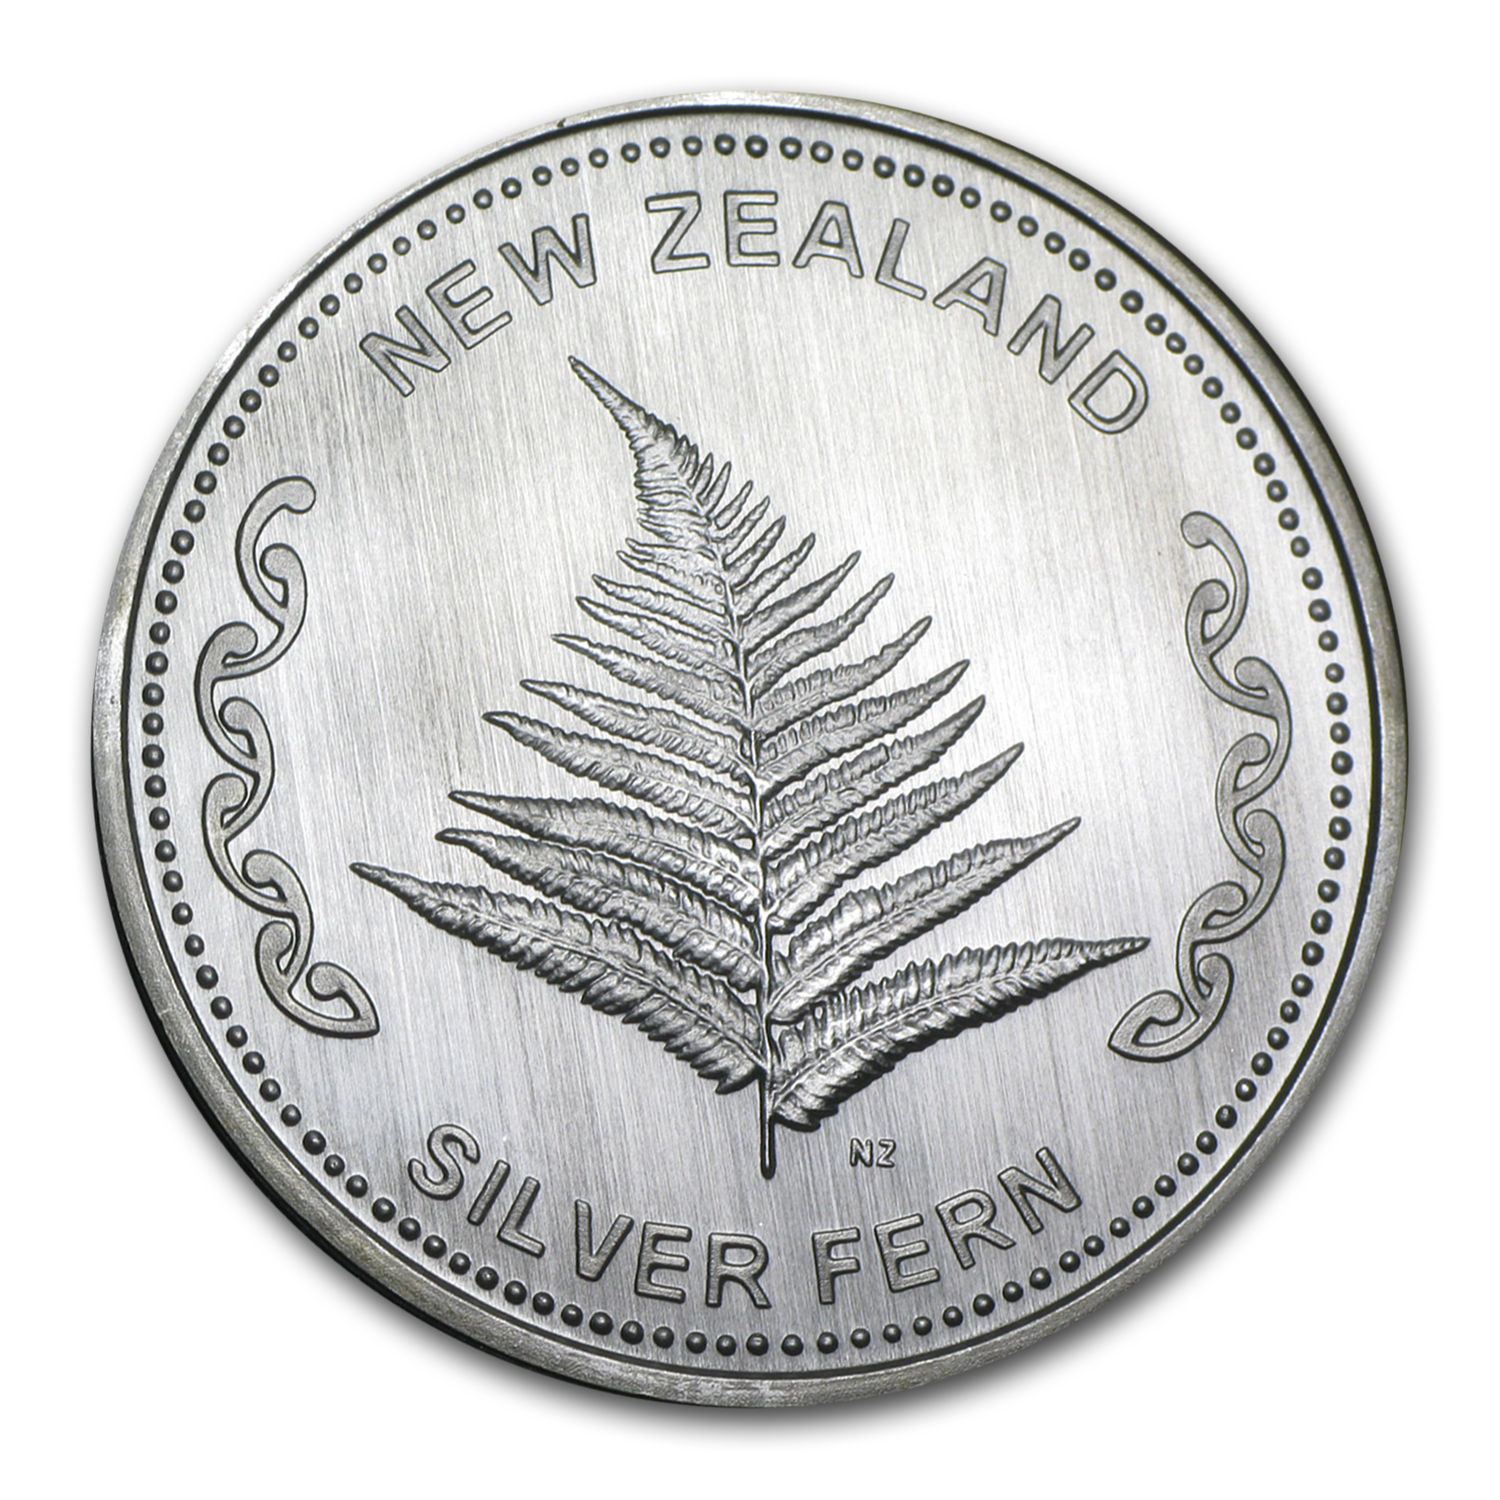 1 oz Silver Rounds - New Zealand Silver Fern